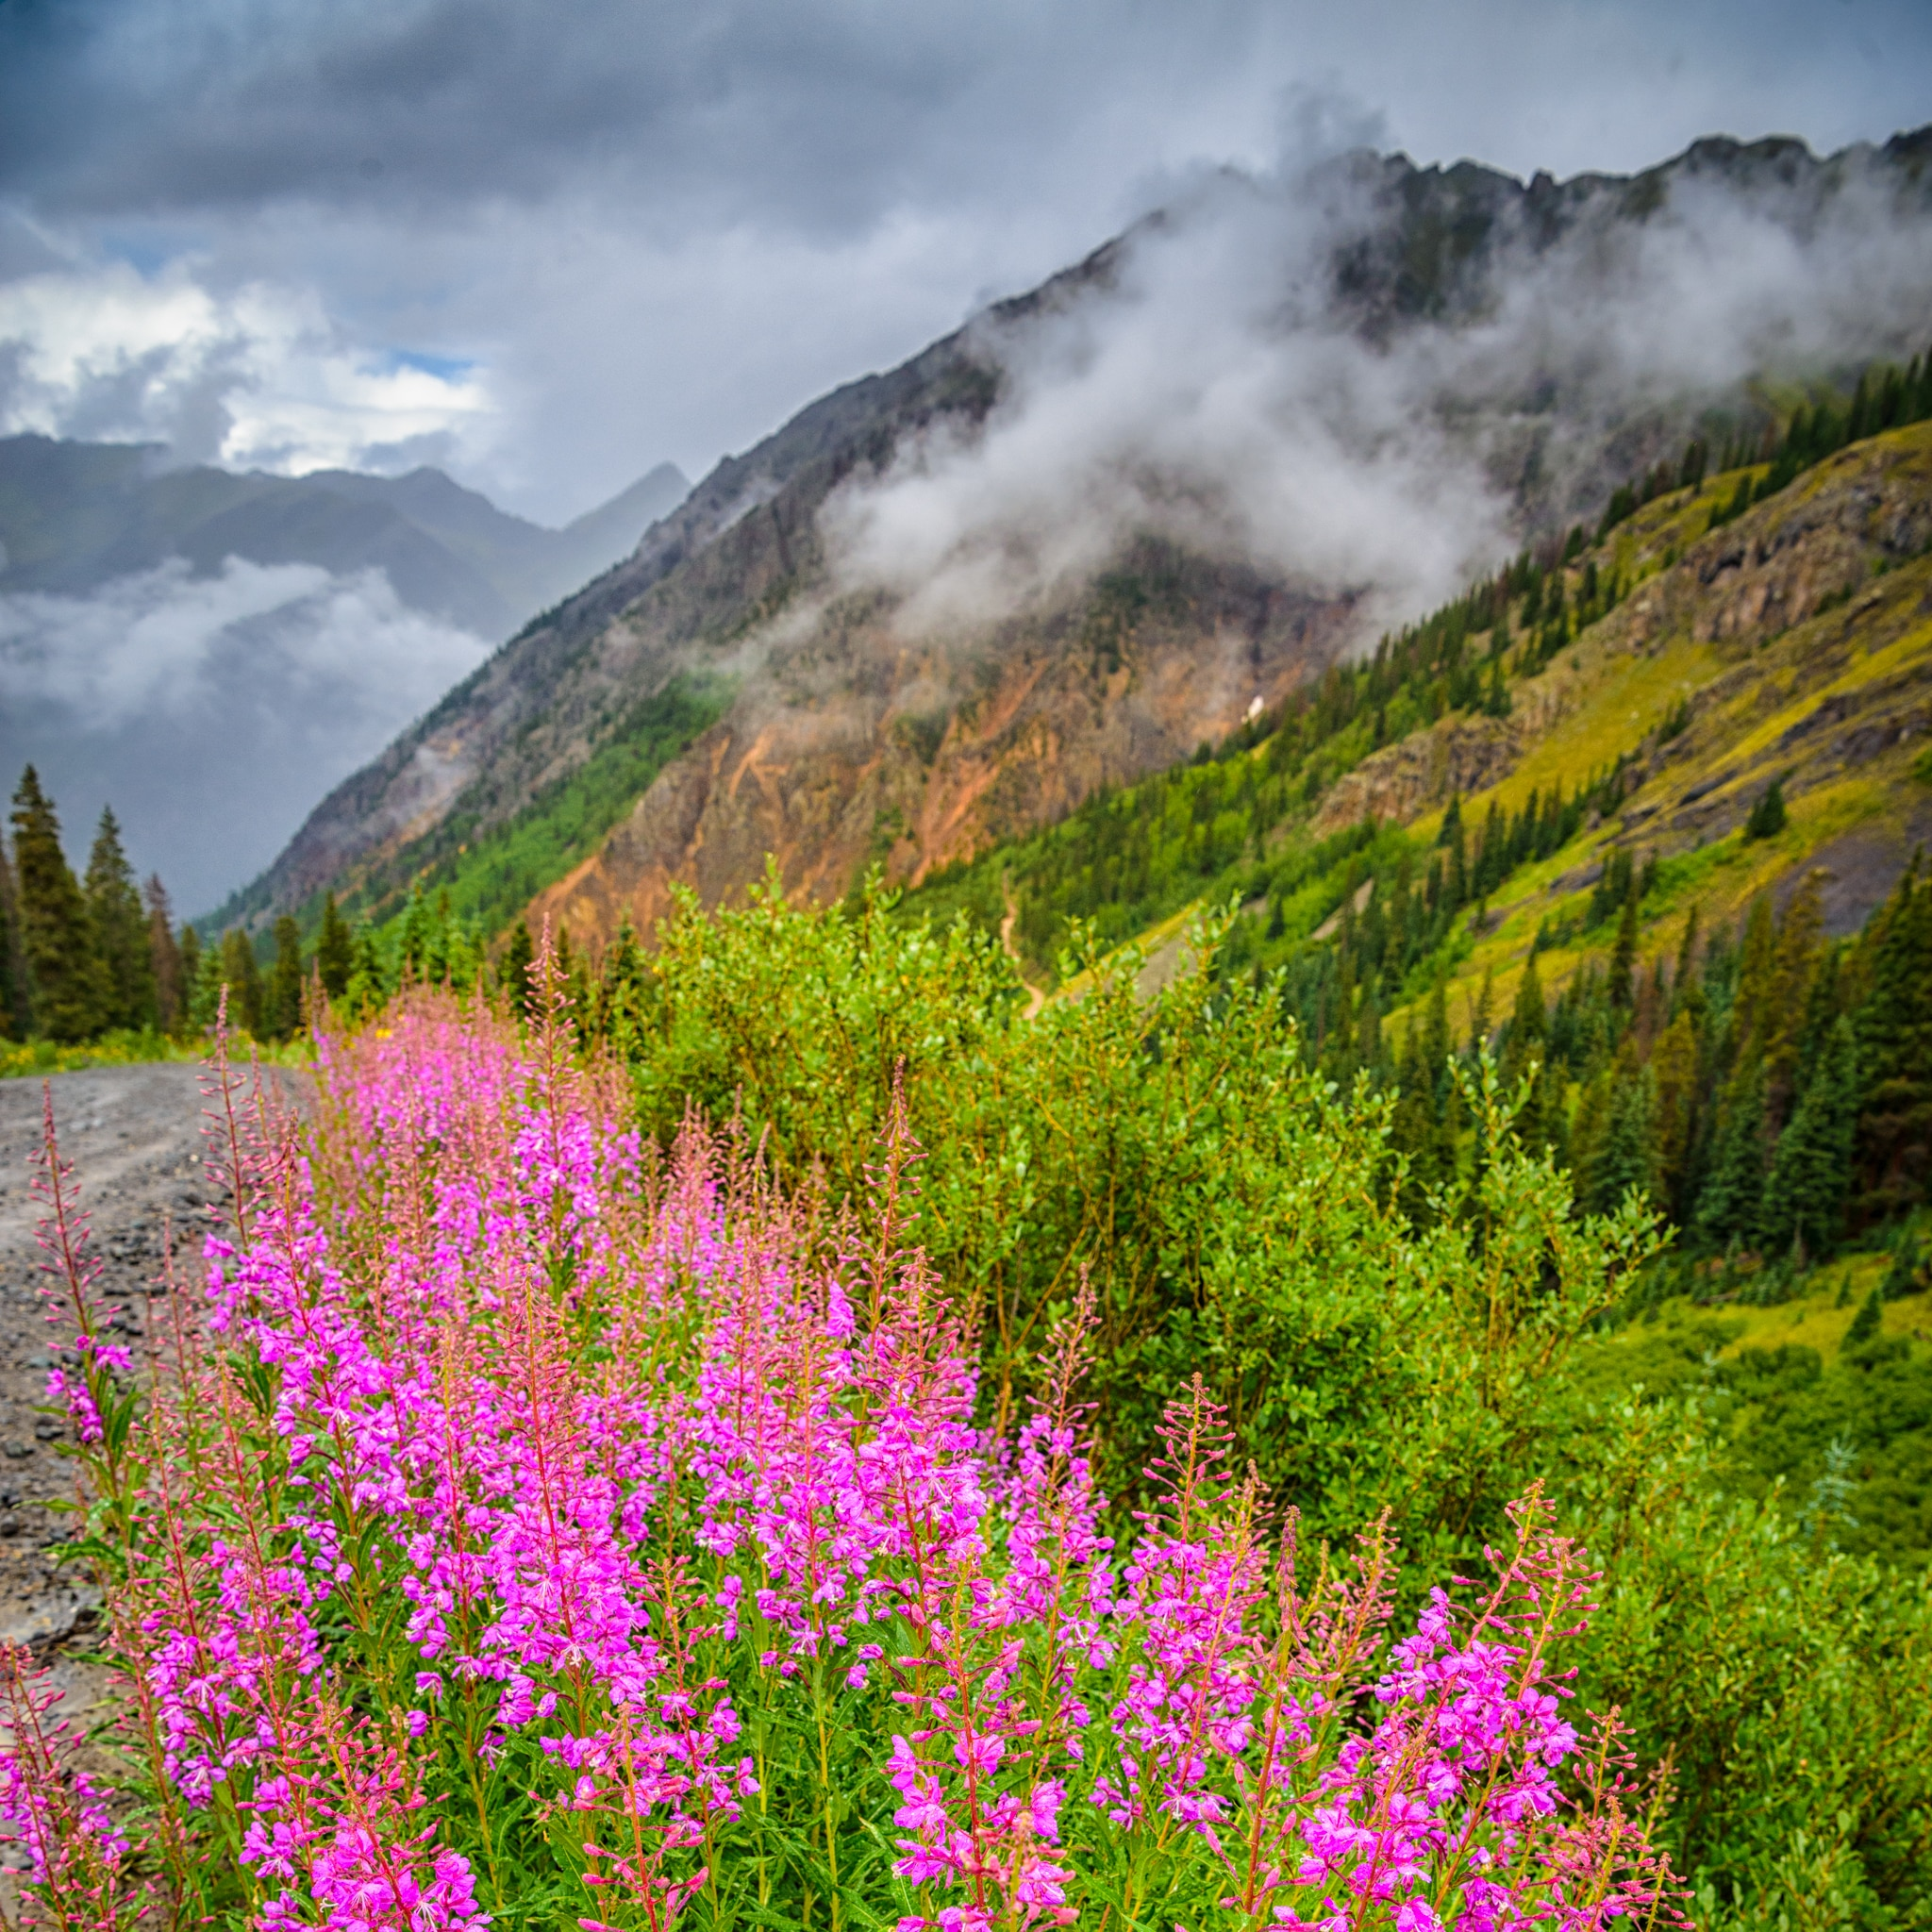 The fireweed along Stony Pass Road near Silverton, Colorado, is especially brilliant in color on this cold and rainy day.